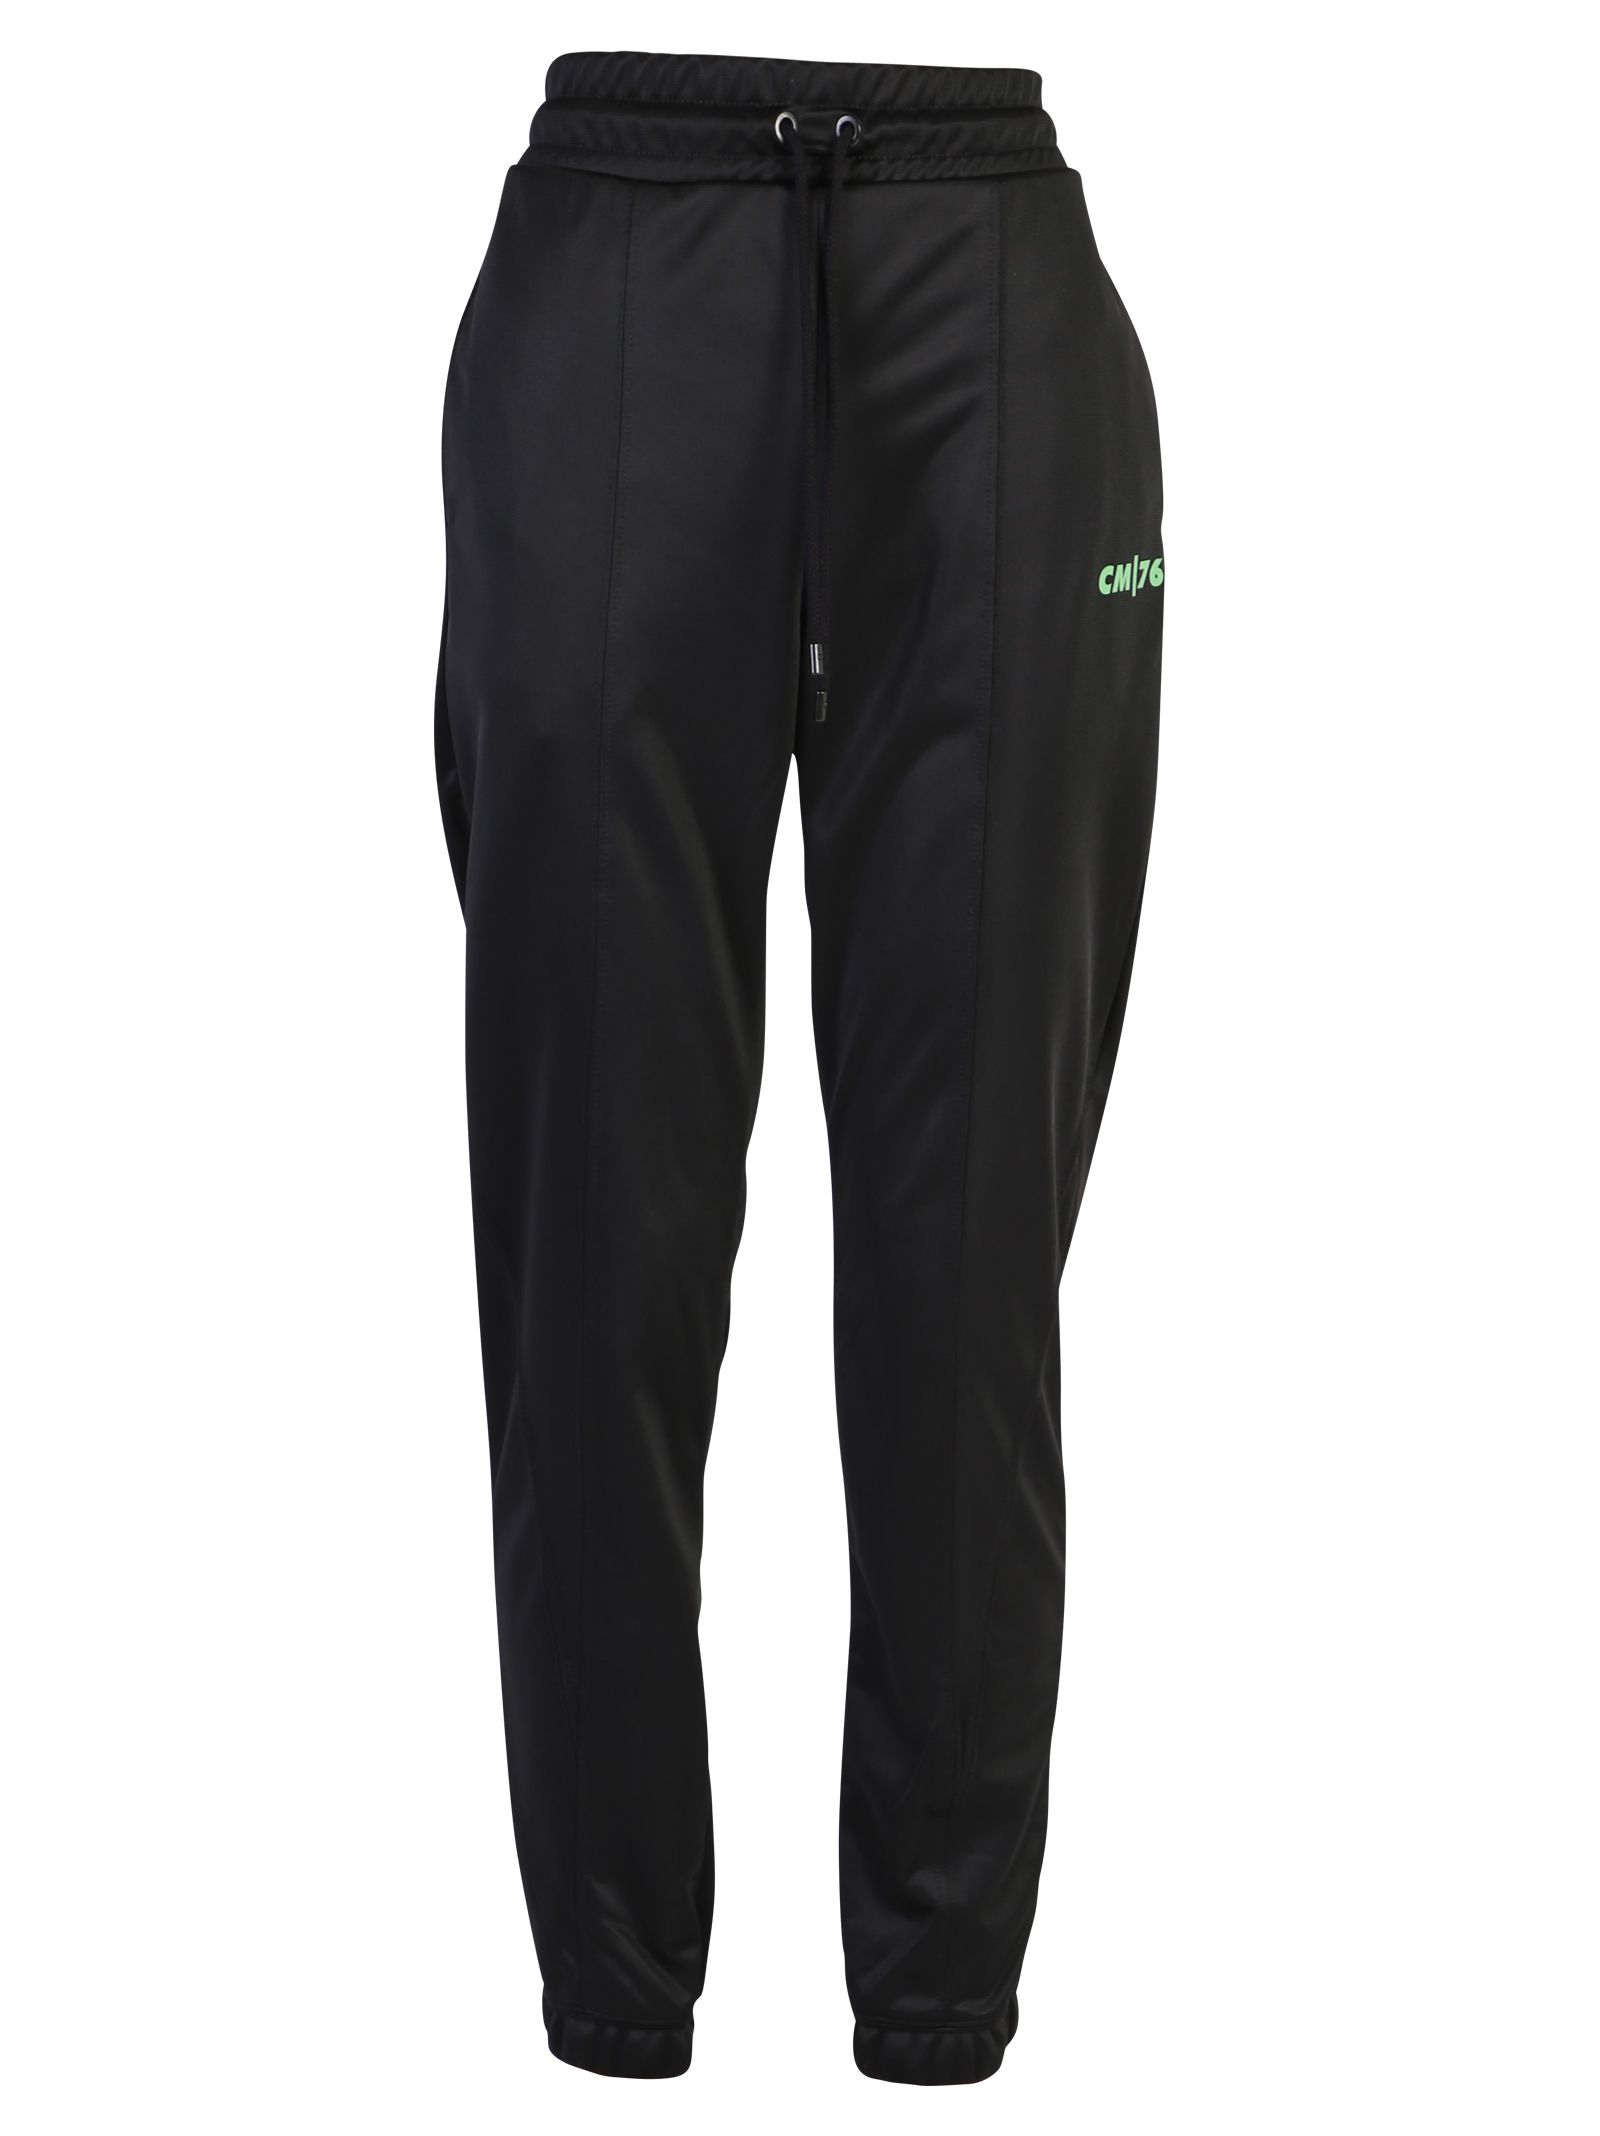 Marcelo Burlon Black Track Pants